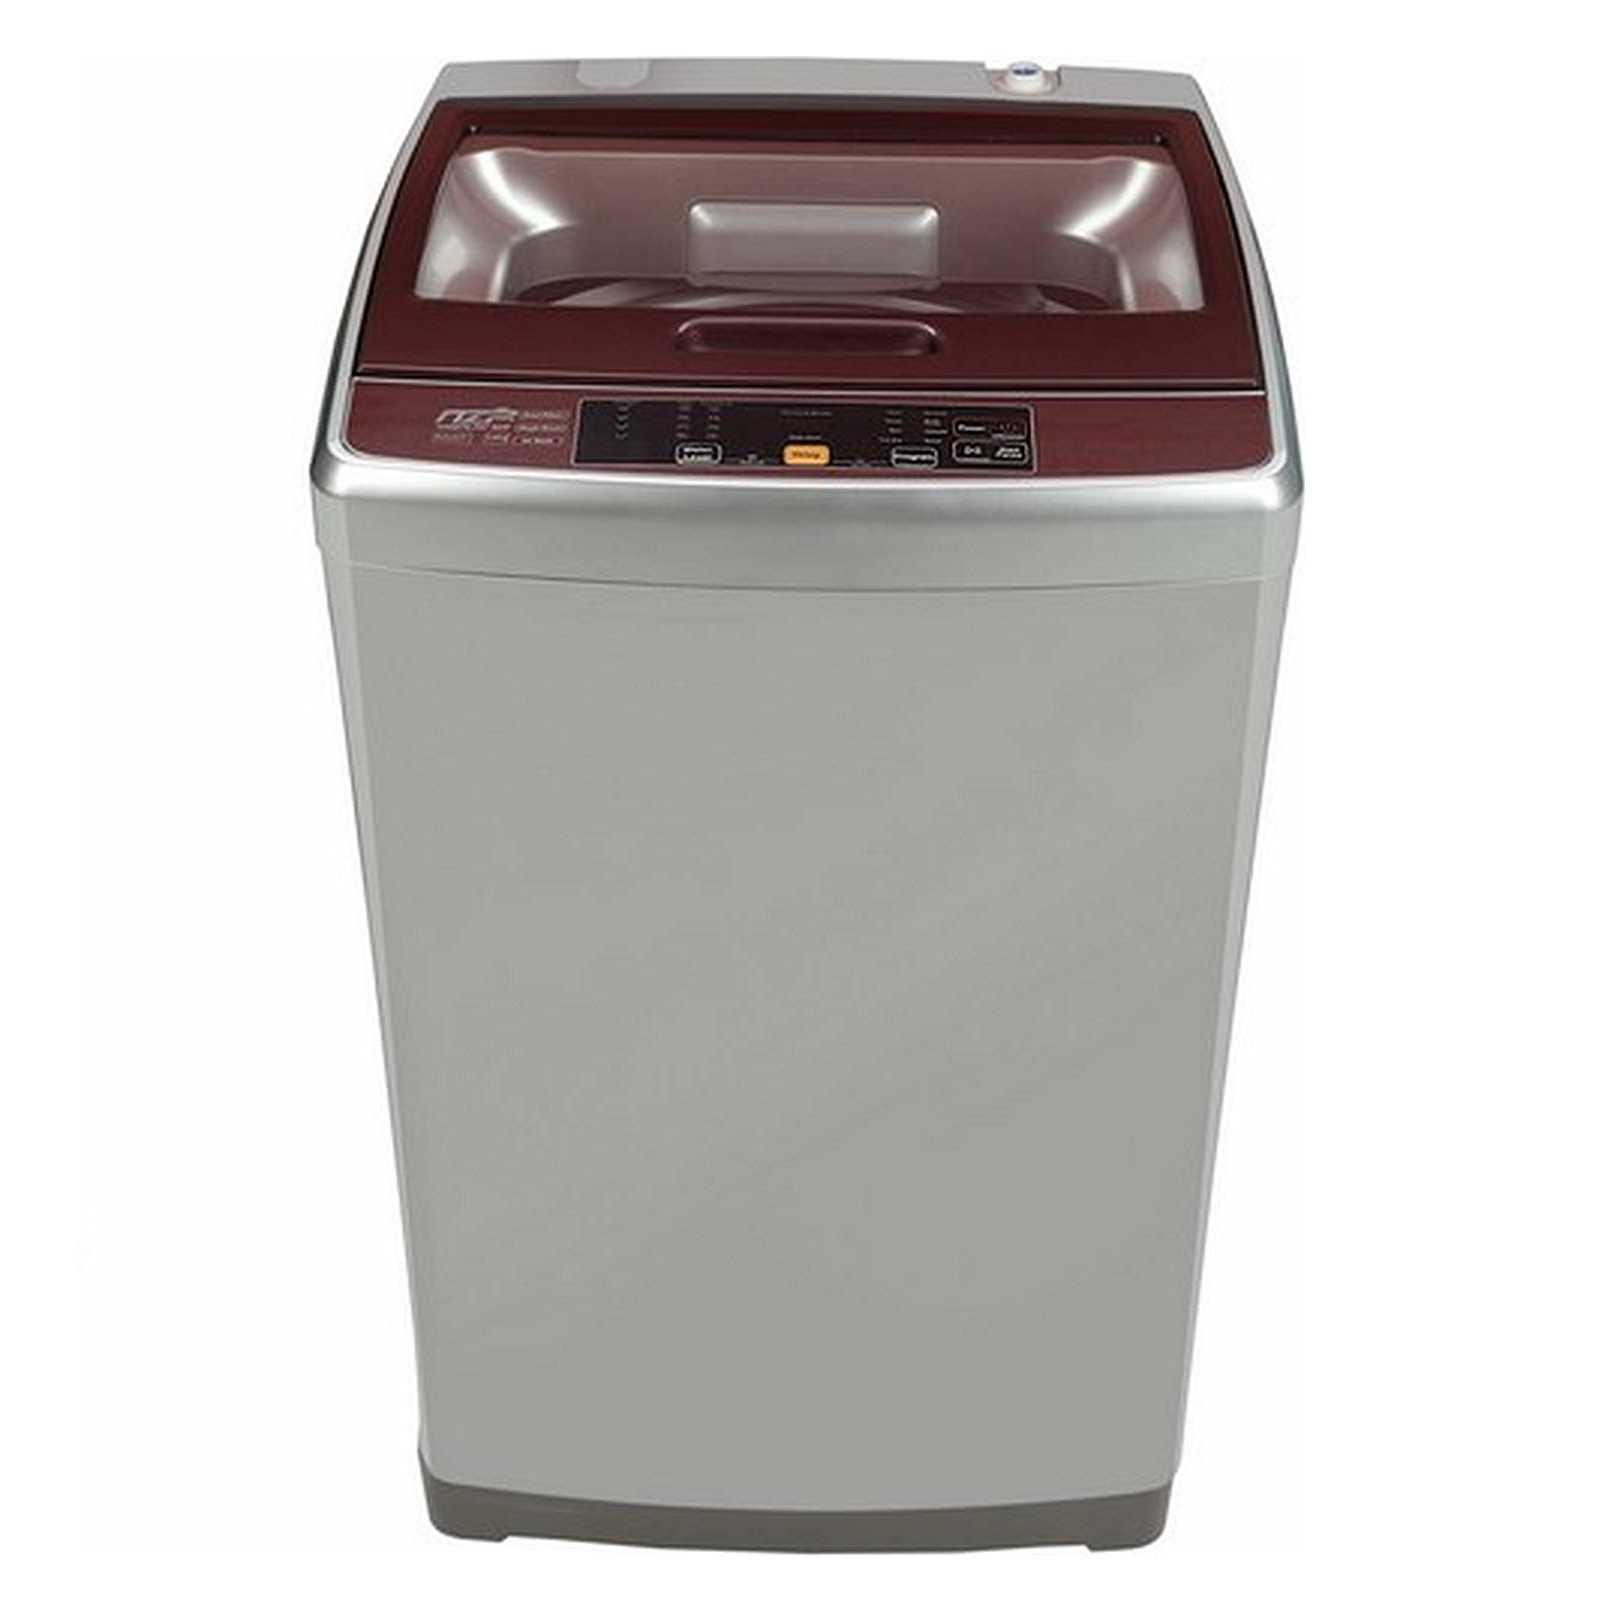 Haier HWM70-707NZP 7 Kg Fully Automatic Top Loading Washing Machine